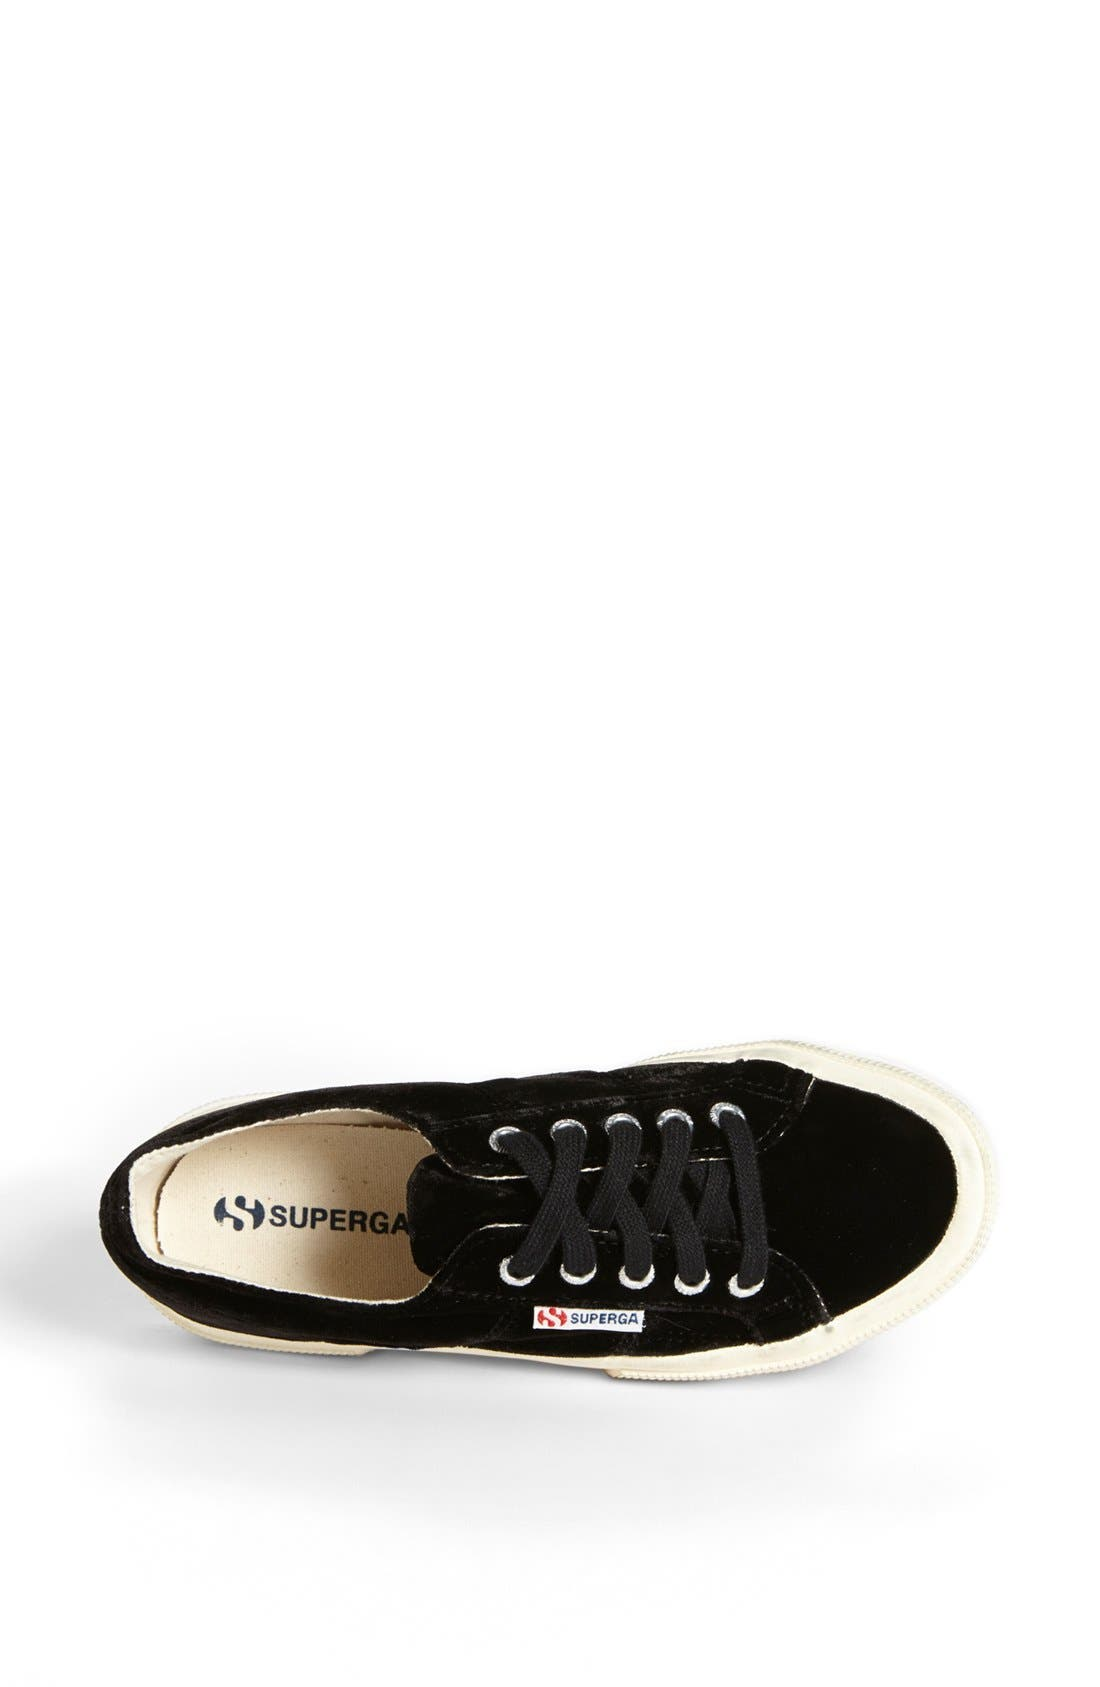 Alternate Image 3  - Superga Velvet Sneaker (Women) (Limited Edition)